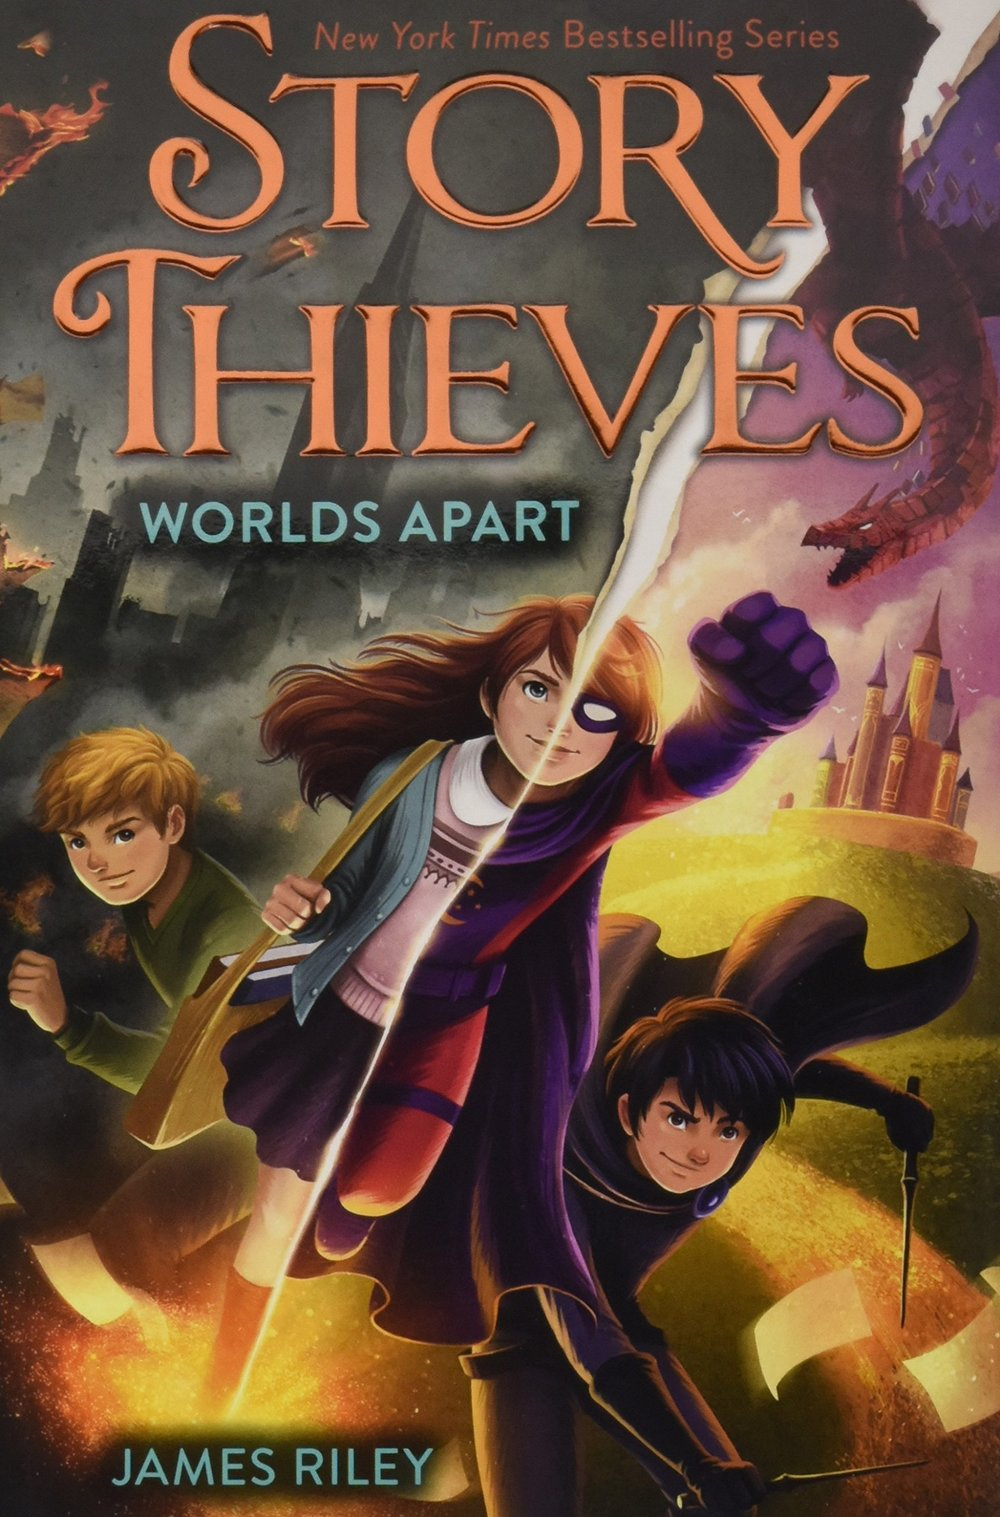 STORY THIEVES: WORLDS APART (BOOK 5) -